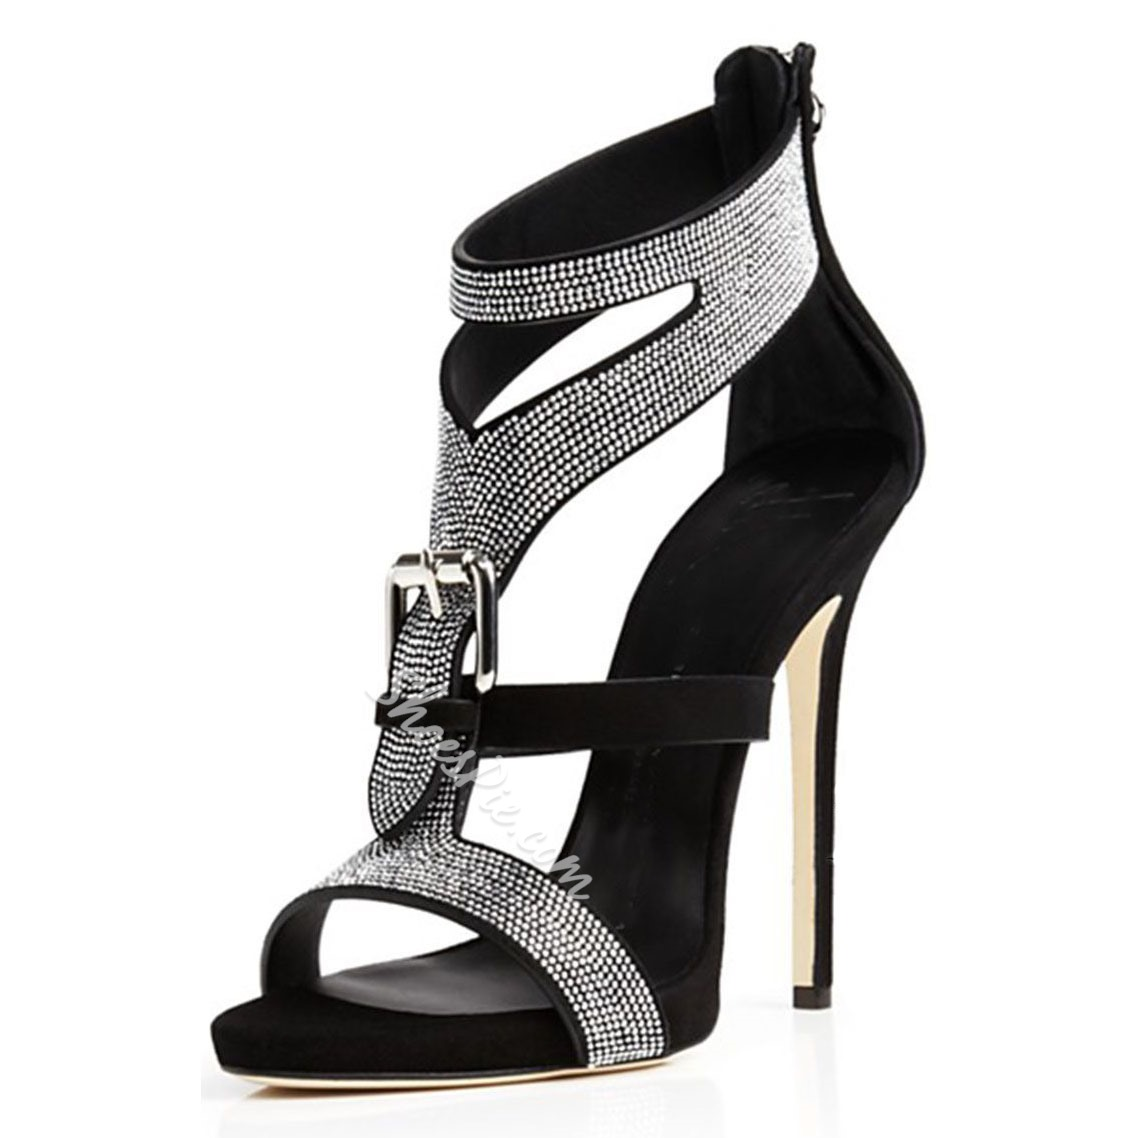 267e89c663fd Shoespie Rhinestone Buckles Stiletto Heel Dress Sandals- Shoespie.com